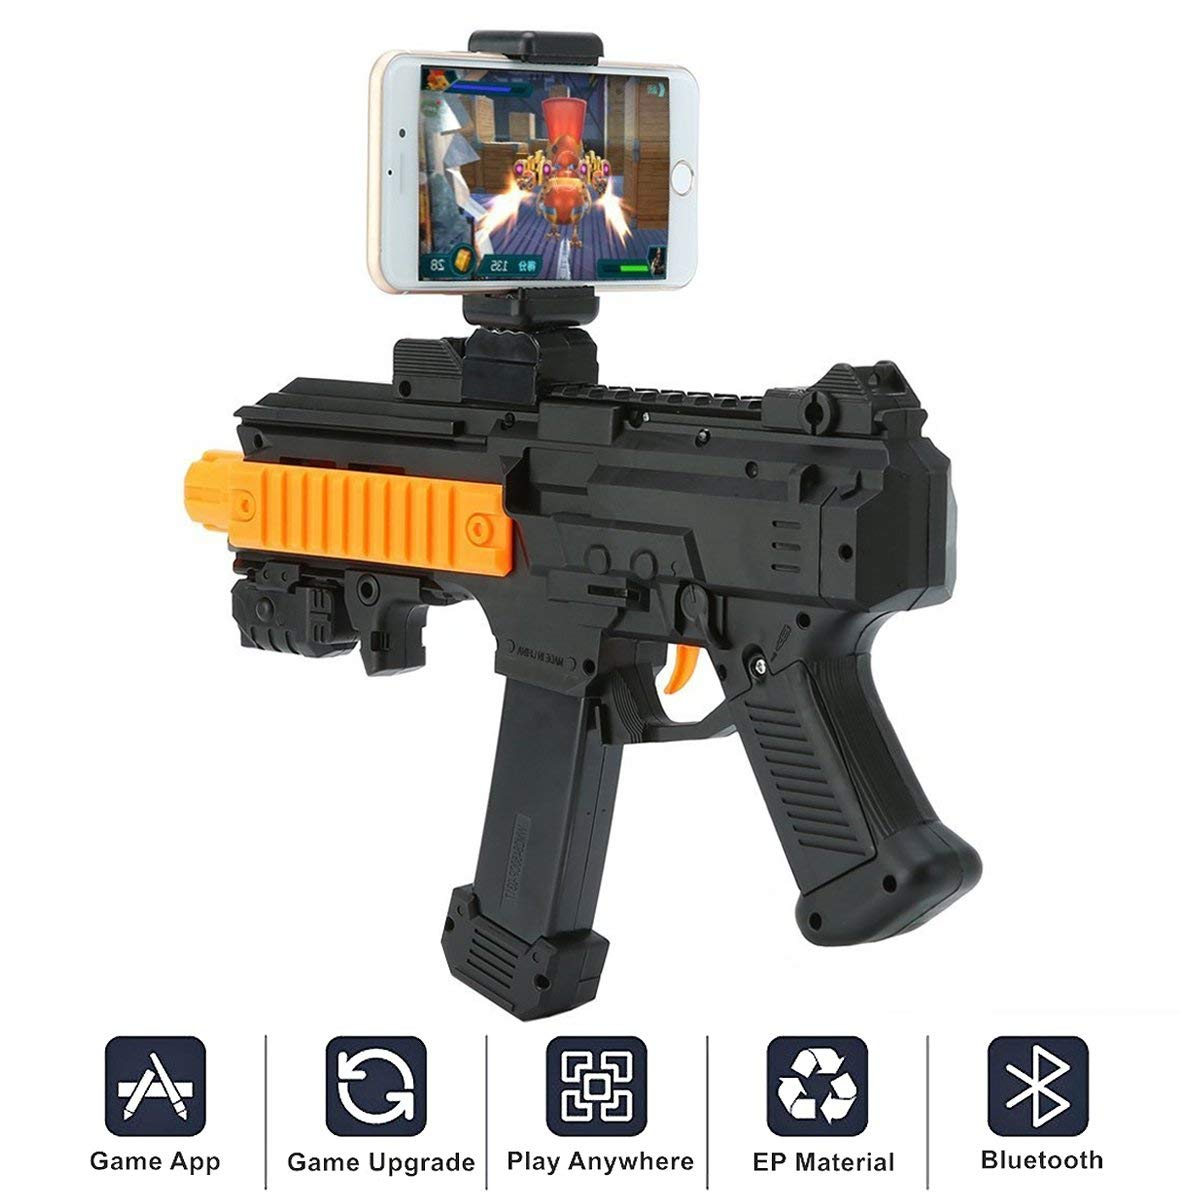 AR Game Gun Bluetooth,Sunandy Portable Virtual Gaming Gun Toy with Cell Phone Stand Holder 360°Augmented Reality AR Bluetooth Game Controller For IOS Android Smartphones